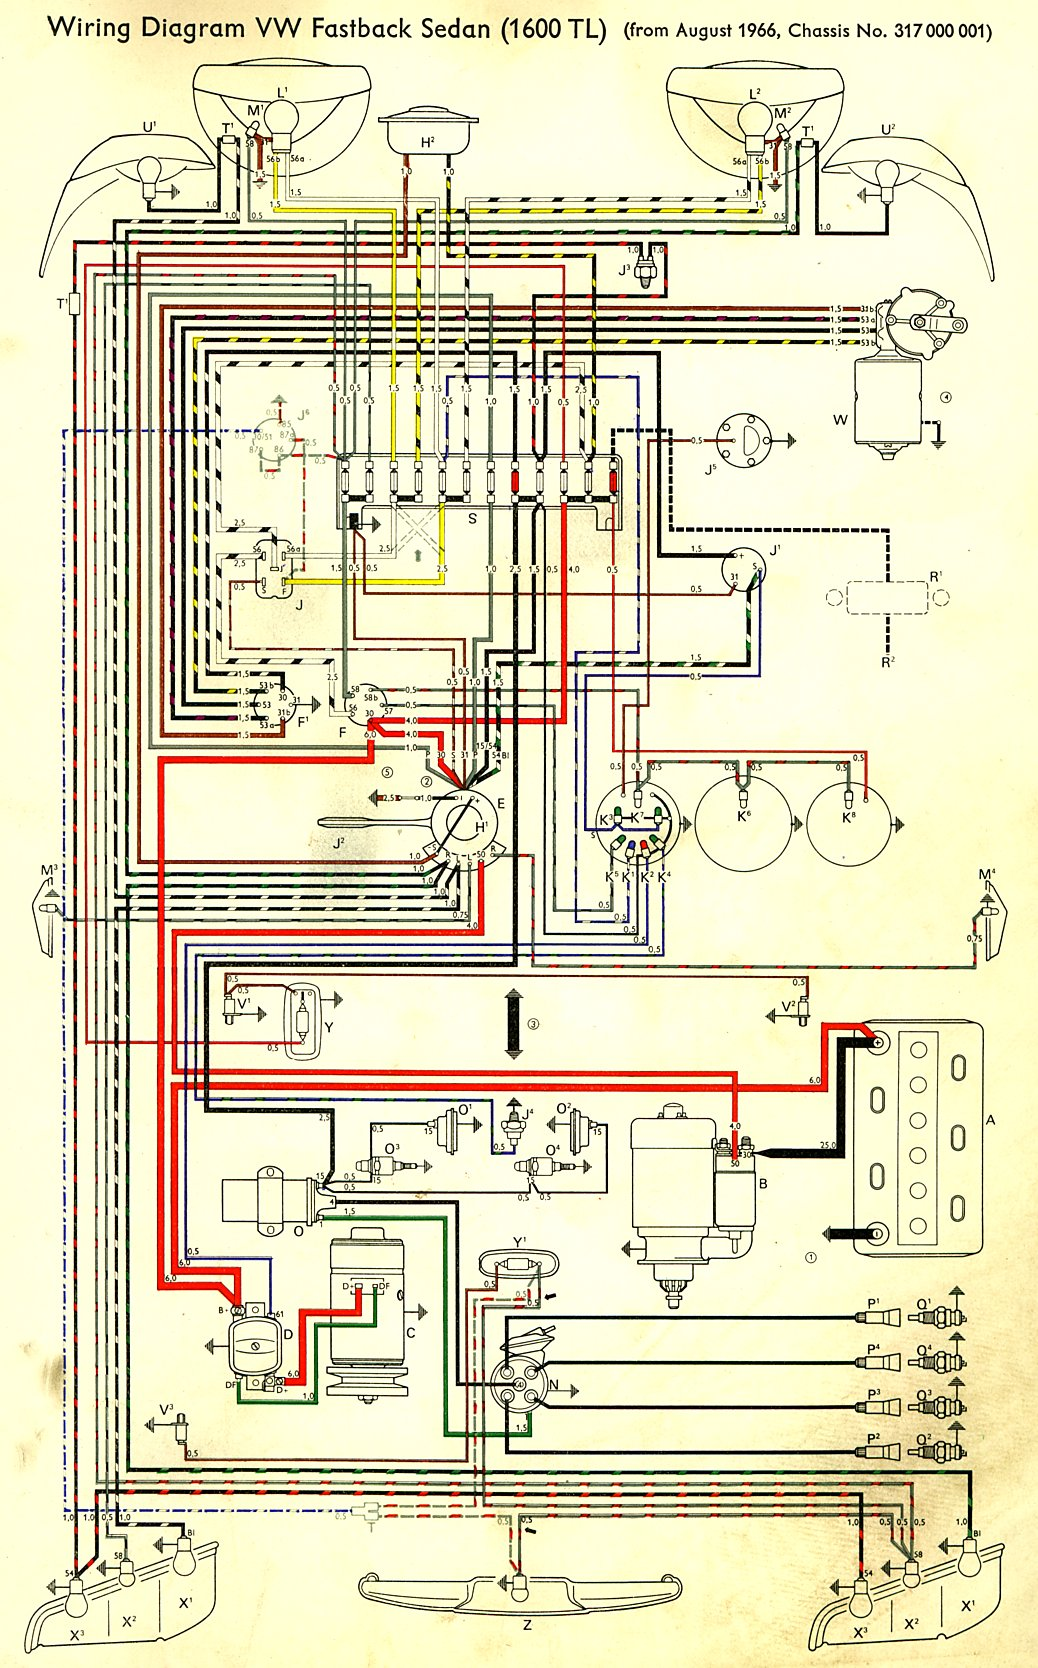 69 vw bug wiring diagram http wwwthesambacom vw archives info wire rh linxglobal co 69 vw bug brake wiring 69 vw bug horn wiring